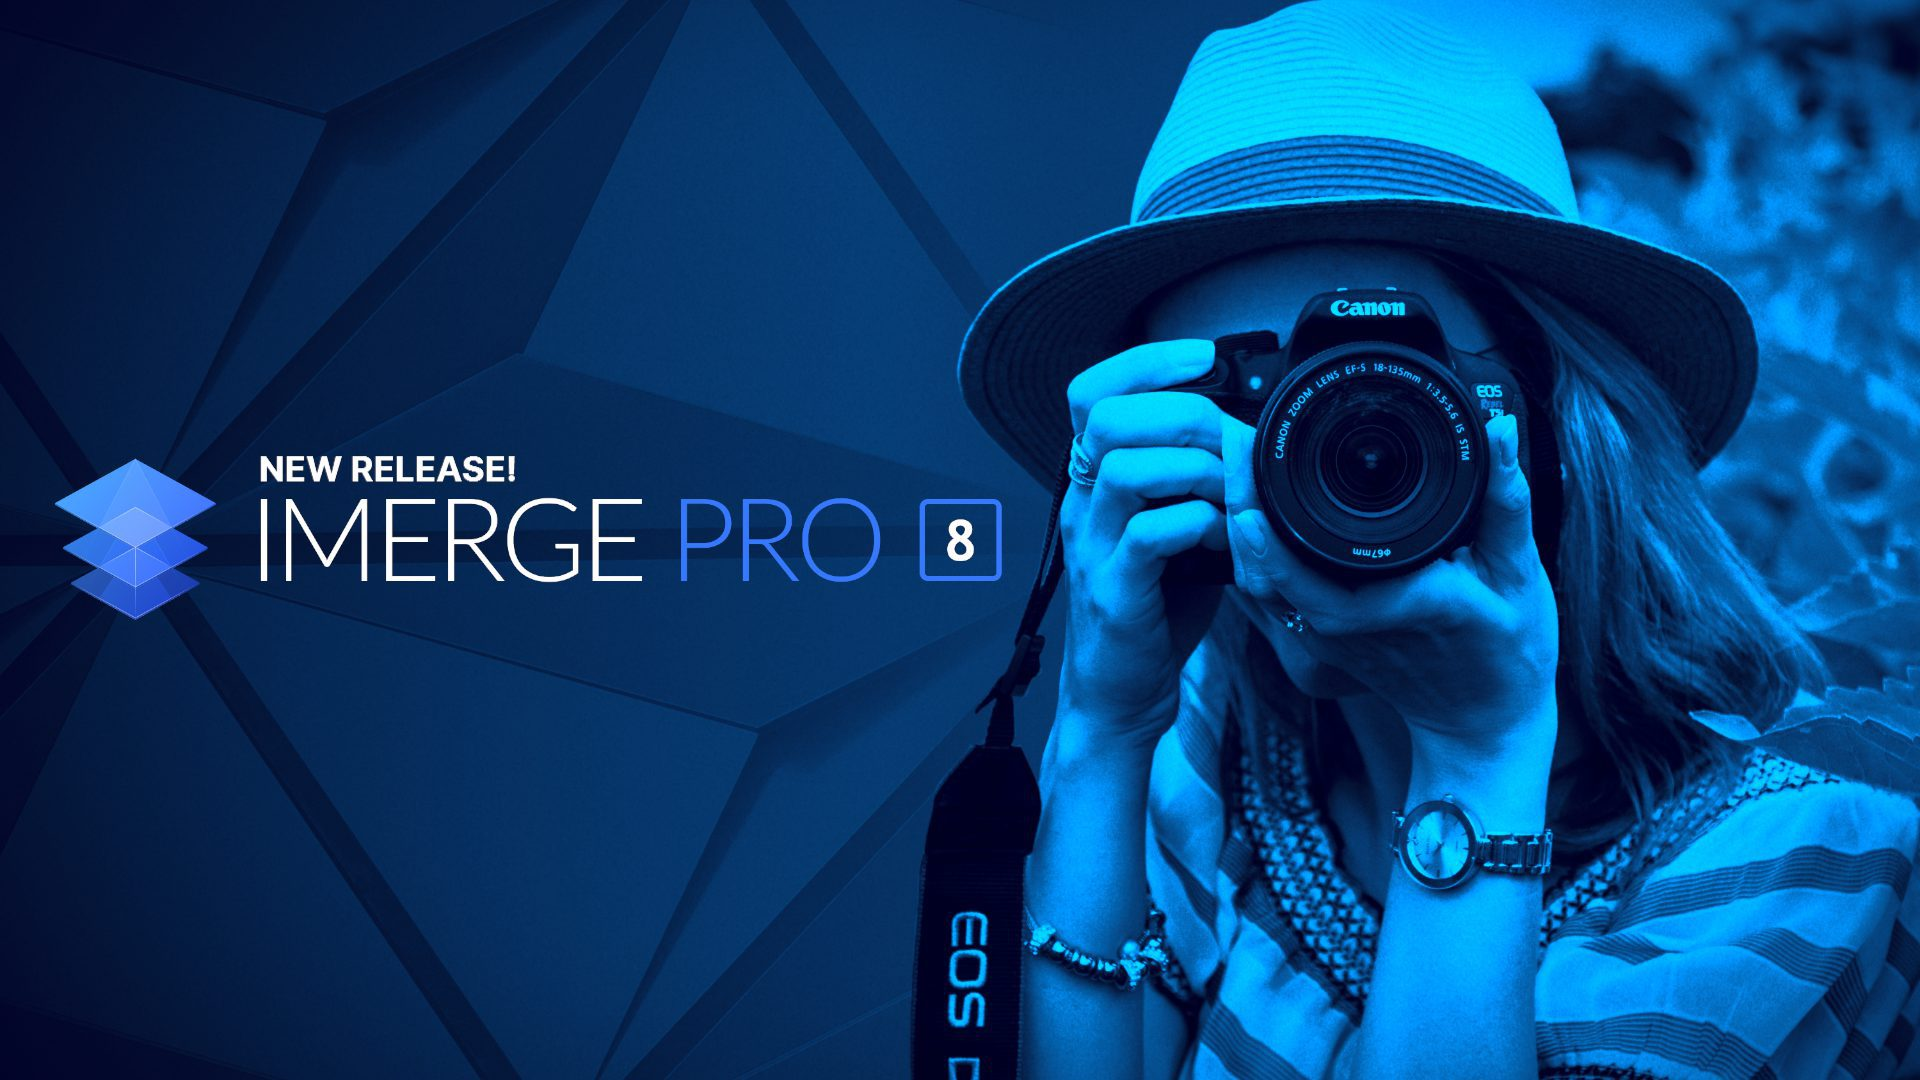 Imerge Pro 8 Update Release graphic